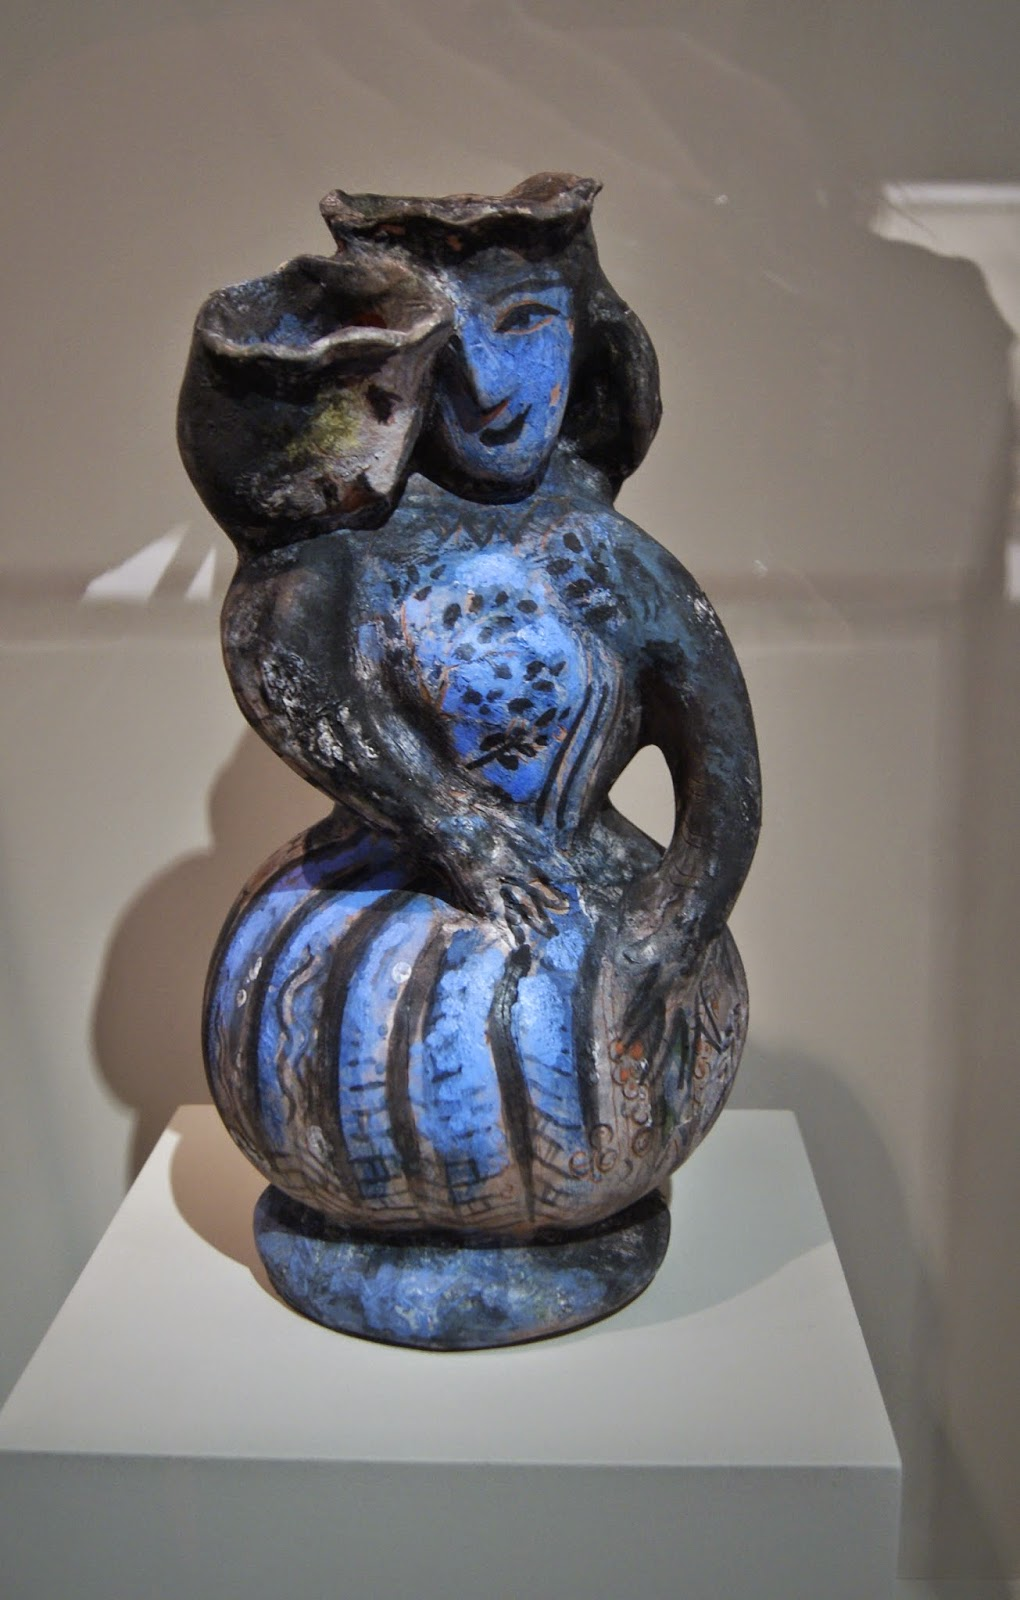 Gardiner Museum of Ceramic Art in Toronto, Artmatters, Culture, Ontario, Canada, MelaniePs, The Purple Scarf, Camp Fires, Exhibit, Exhibition, Joy of collection, marc chagall, lovers